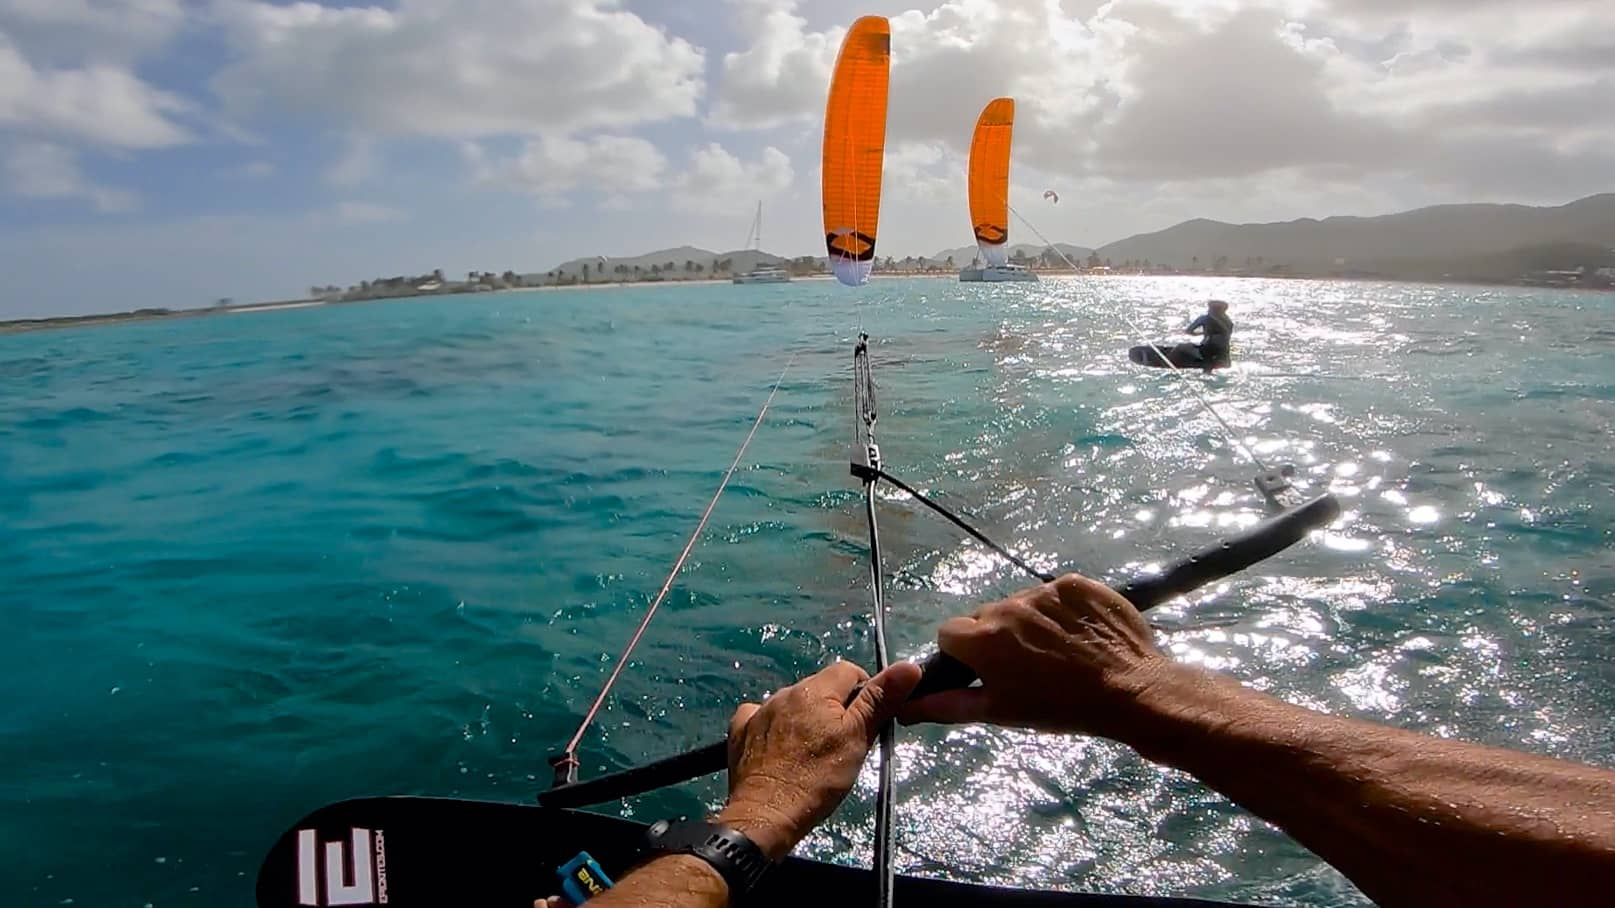 This is how the Pros do it - with Epic Kites Kiteboarding